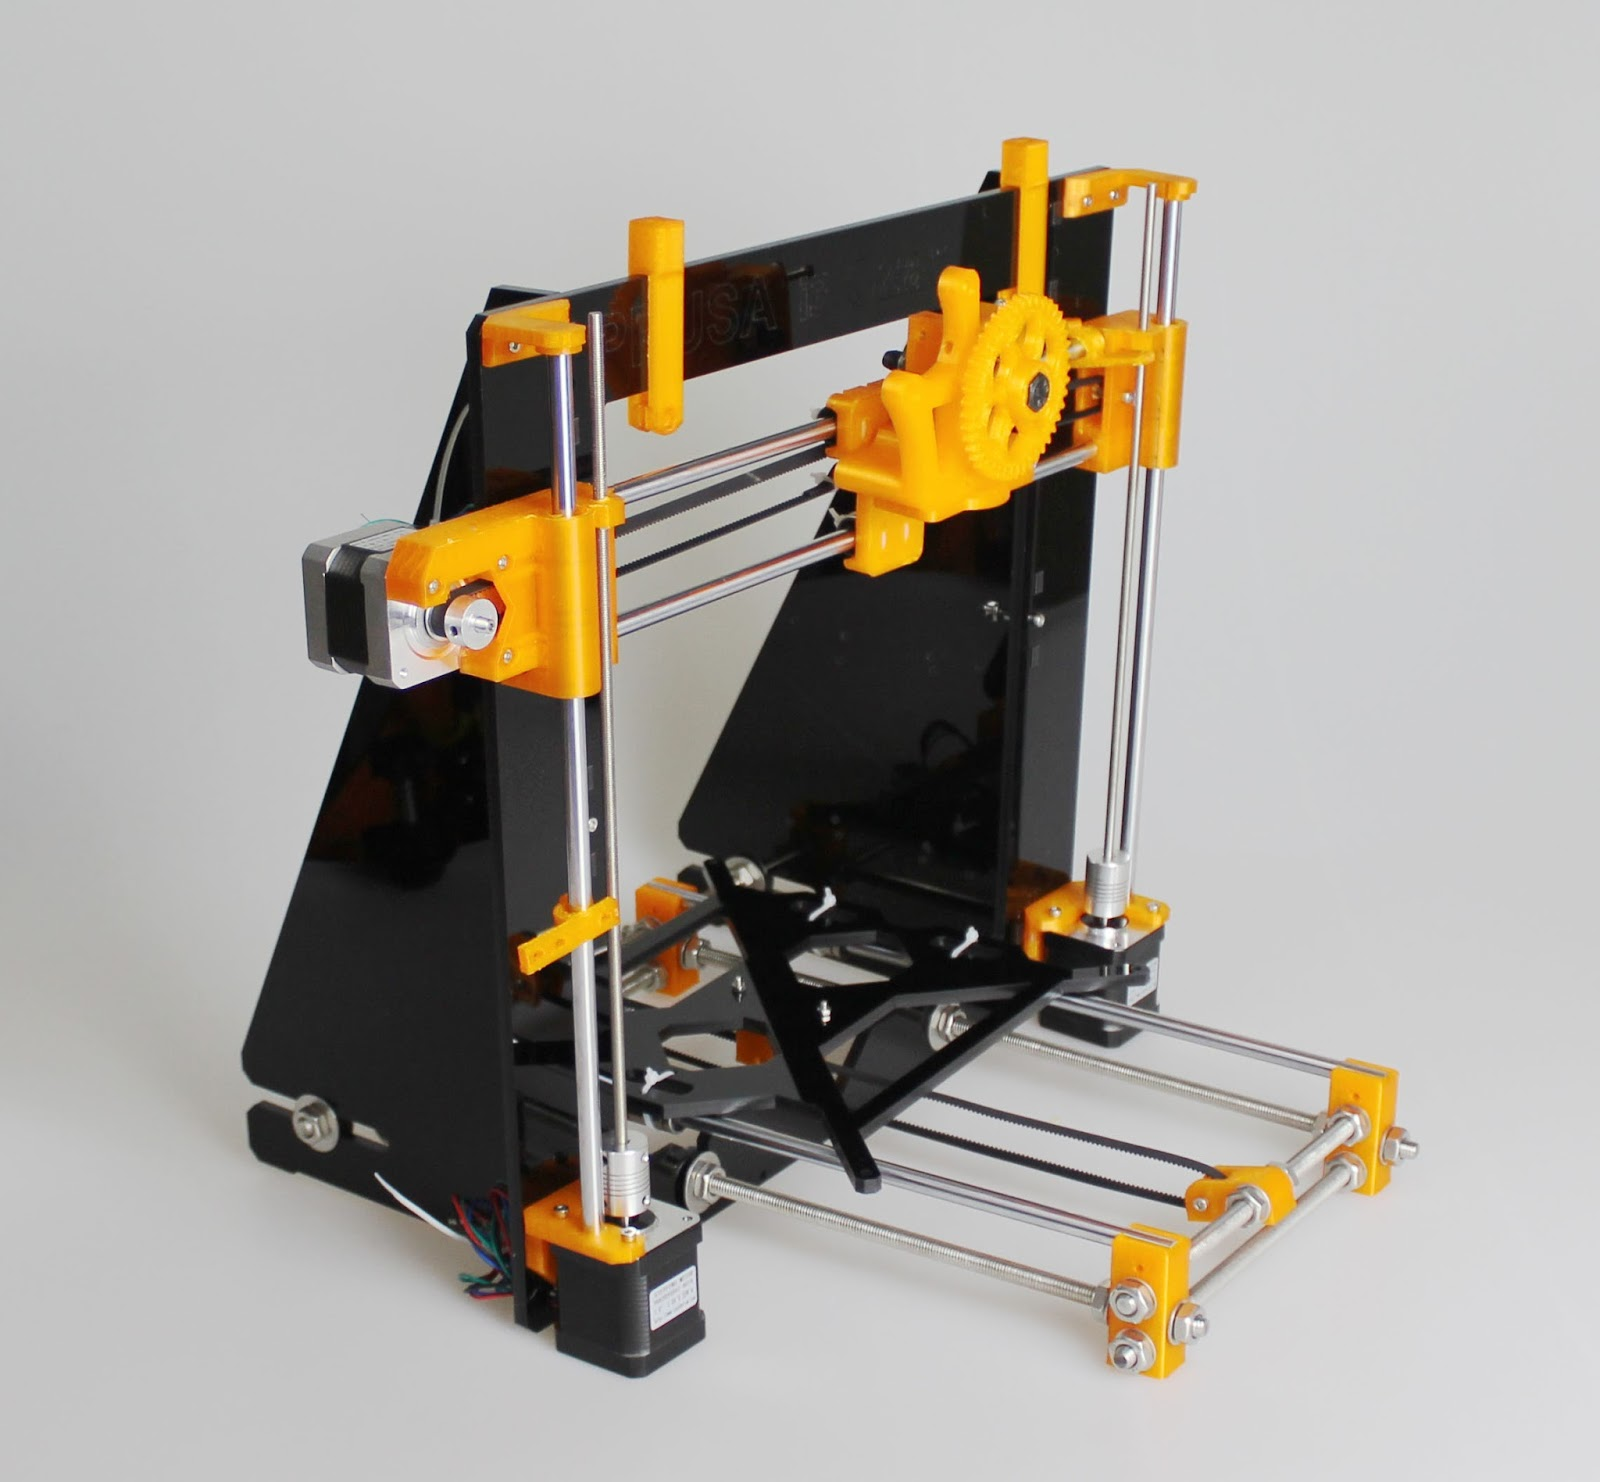 3D Printer DIY and arduino: My thought on Prusa i3 (1) ....Structure stability.